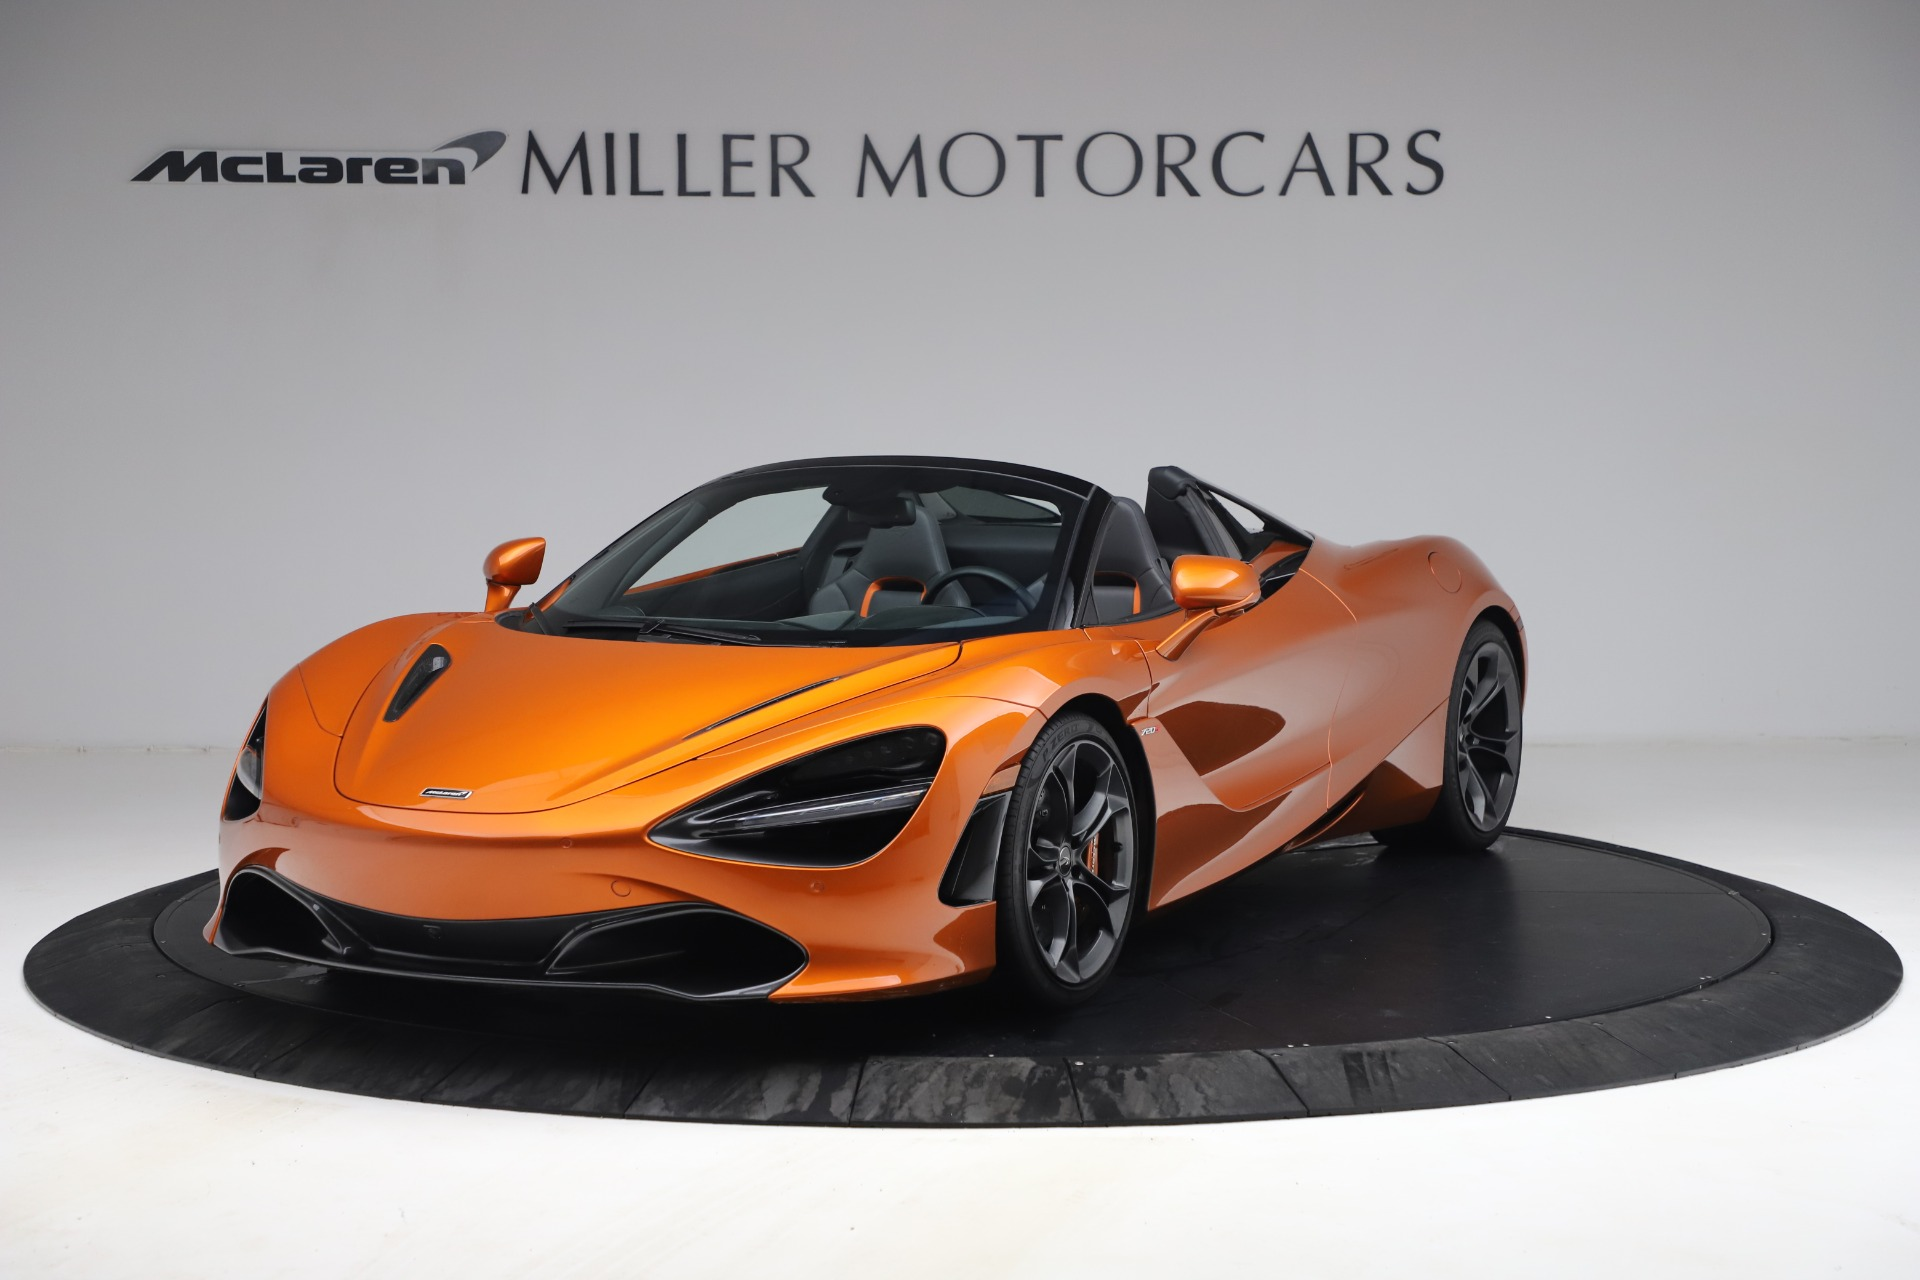 Used 2020 McLaren 720S Spider for sale $335,900 at Rolls-Royce Motor Cars Greenwich in Greenwich CT 06830 1